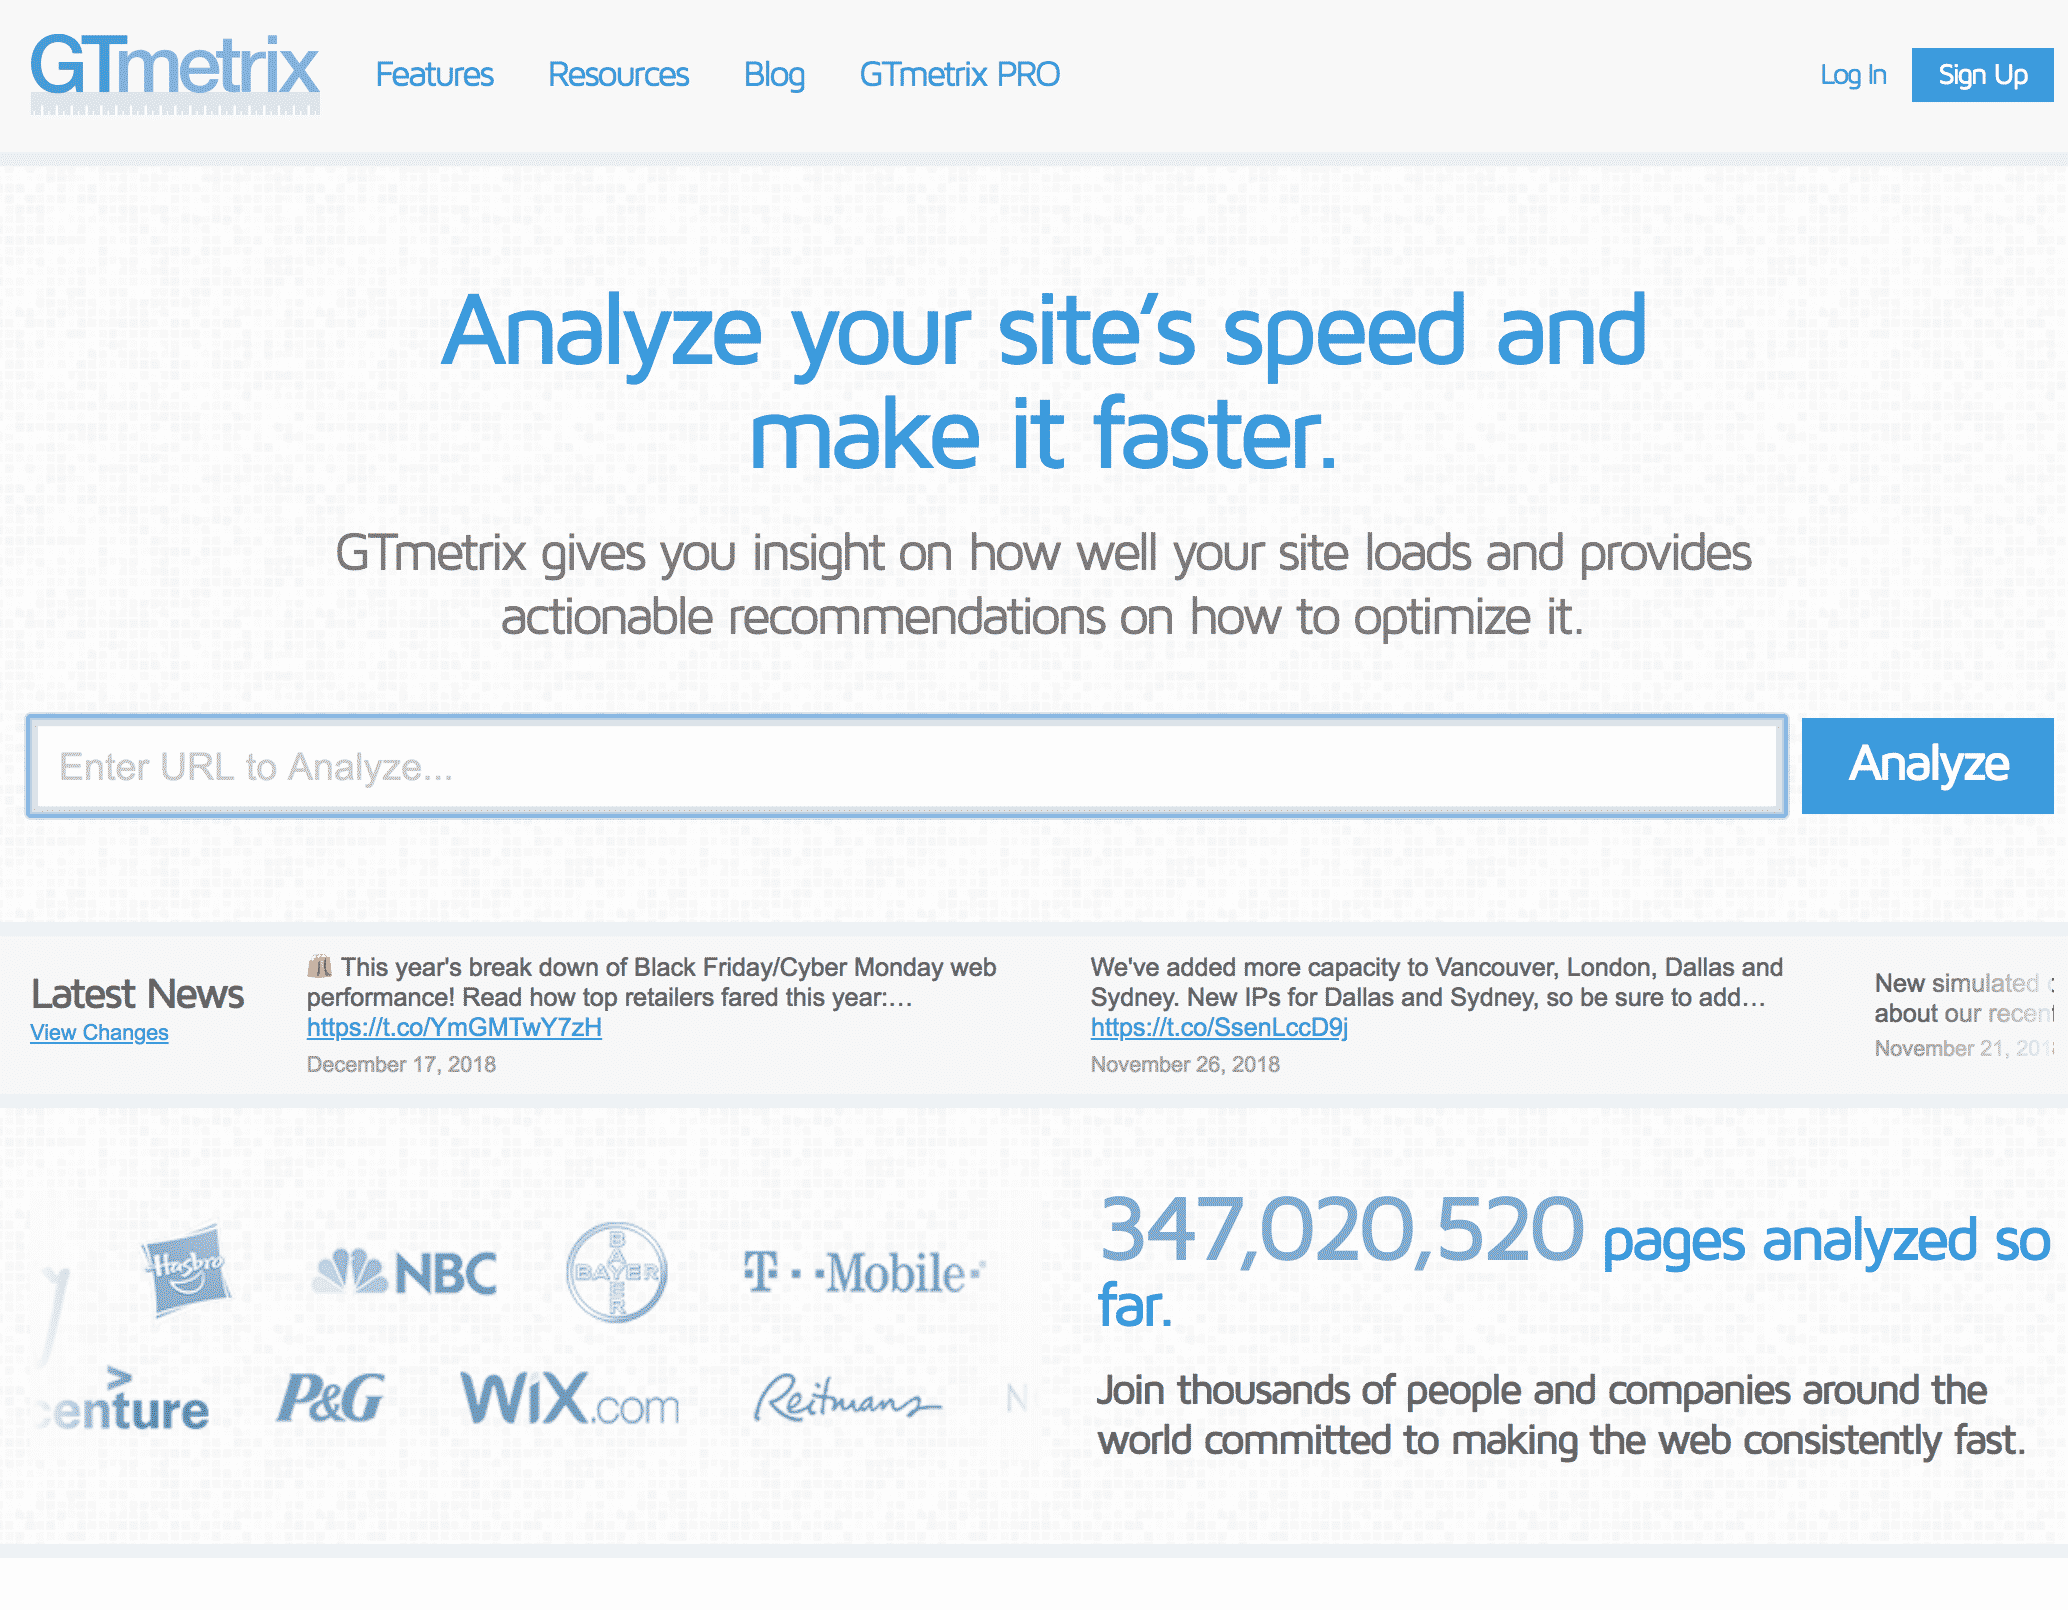 GTmetrix - analyze your site's speed and make it faster